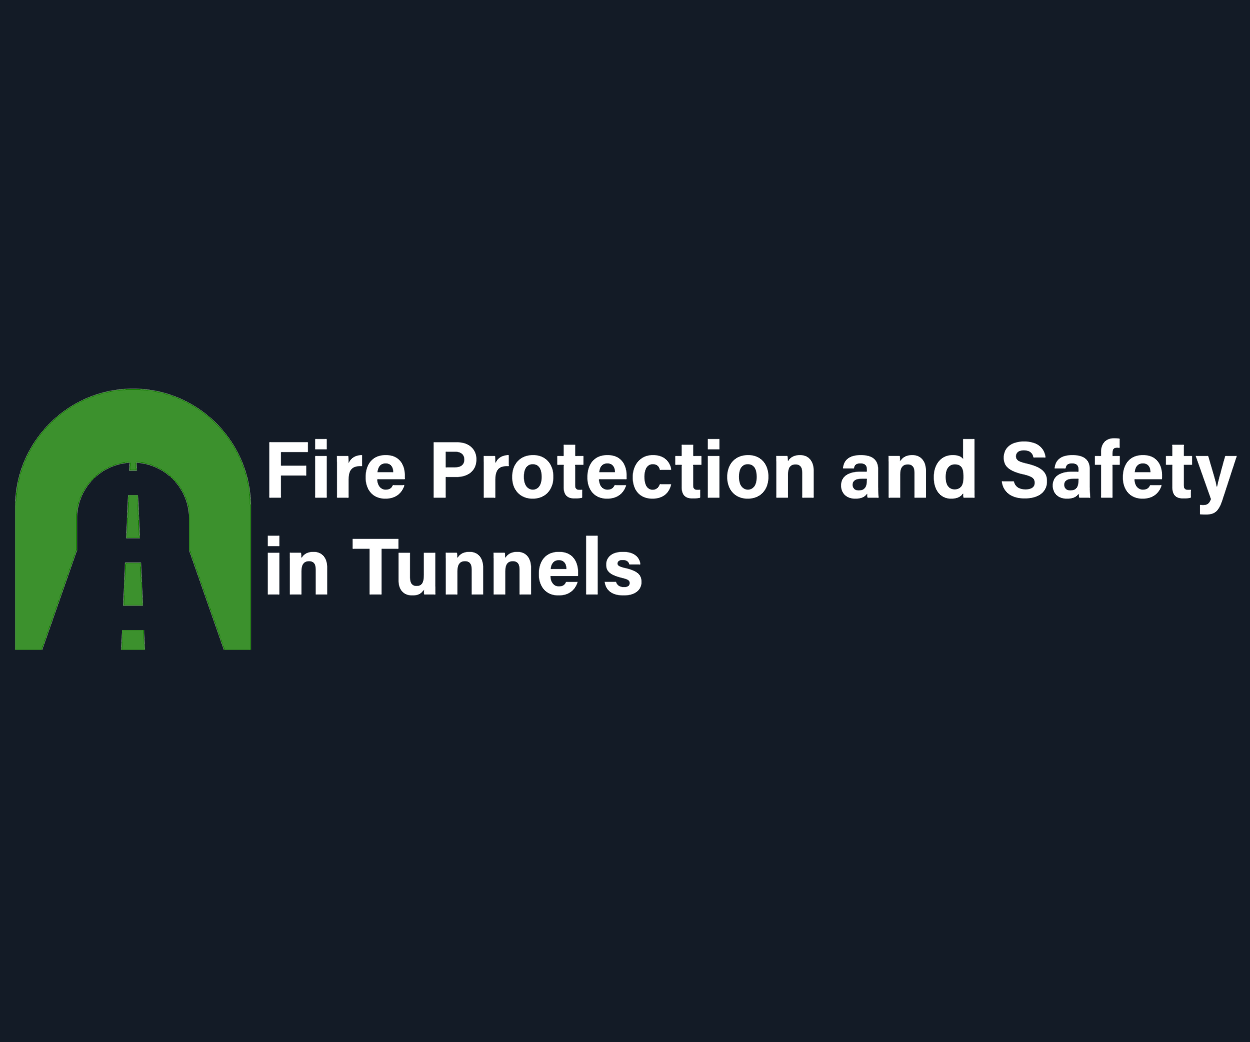 Fire Protection and Safety in Tunnels 2021– Virtual Conference